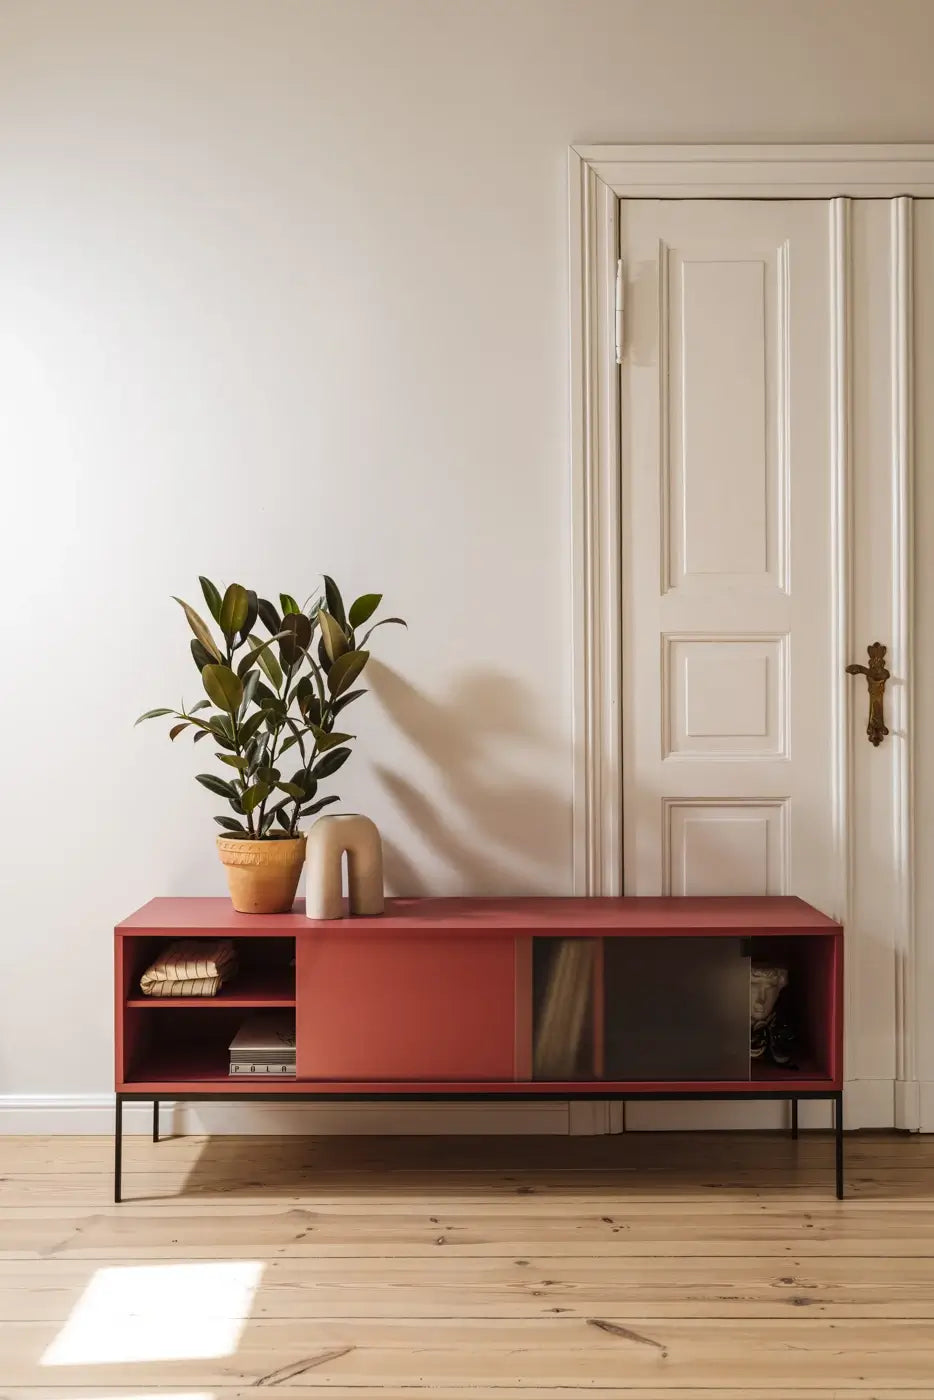 Noo Ma Best Quality Contemporary Furniture Handmade In Europe